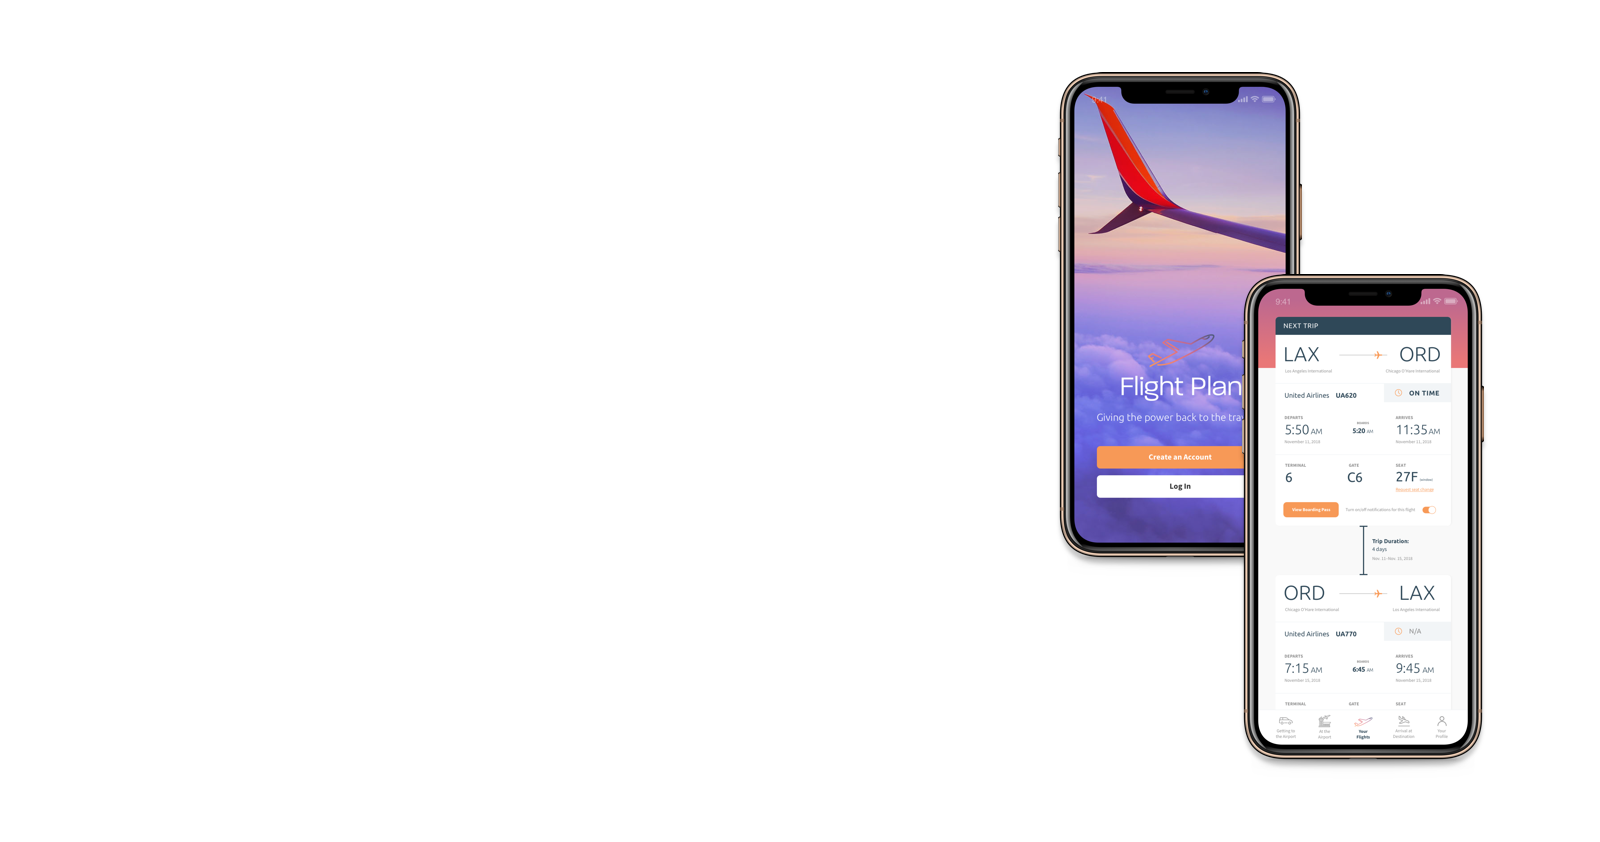 Flight Plan - An app that makes flying carefree